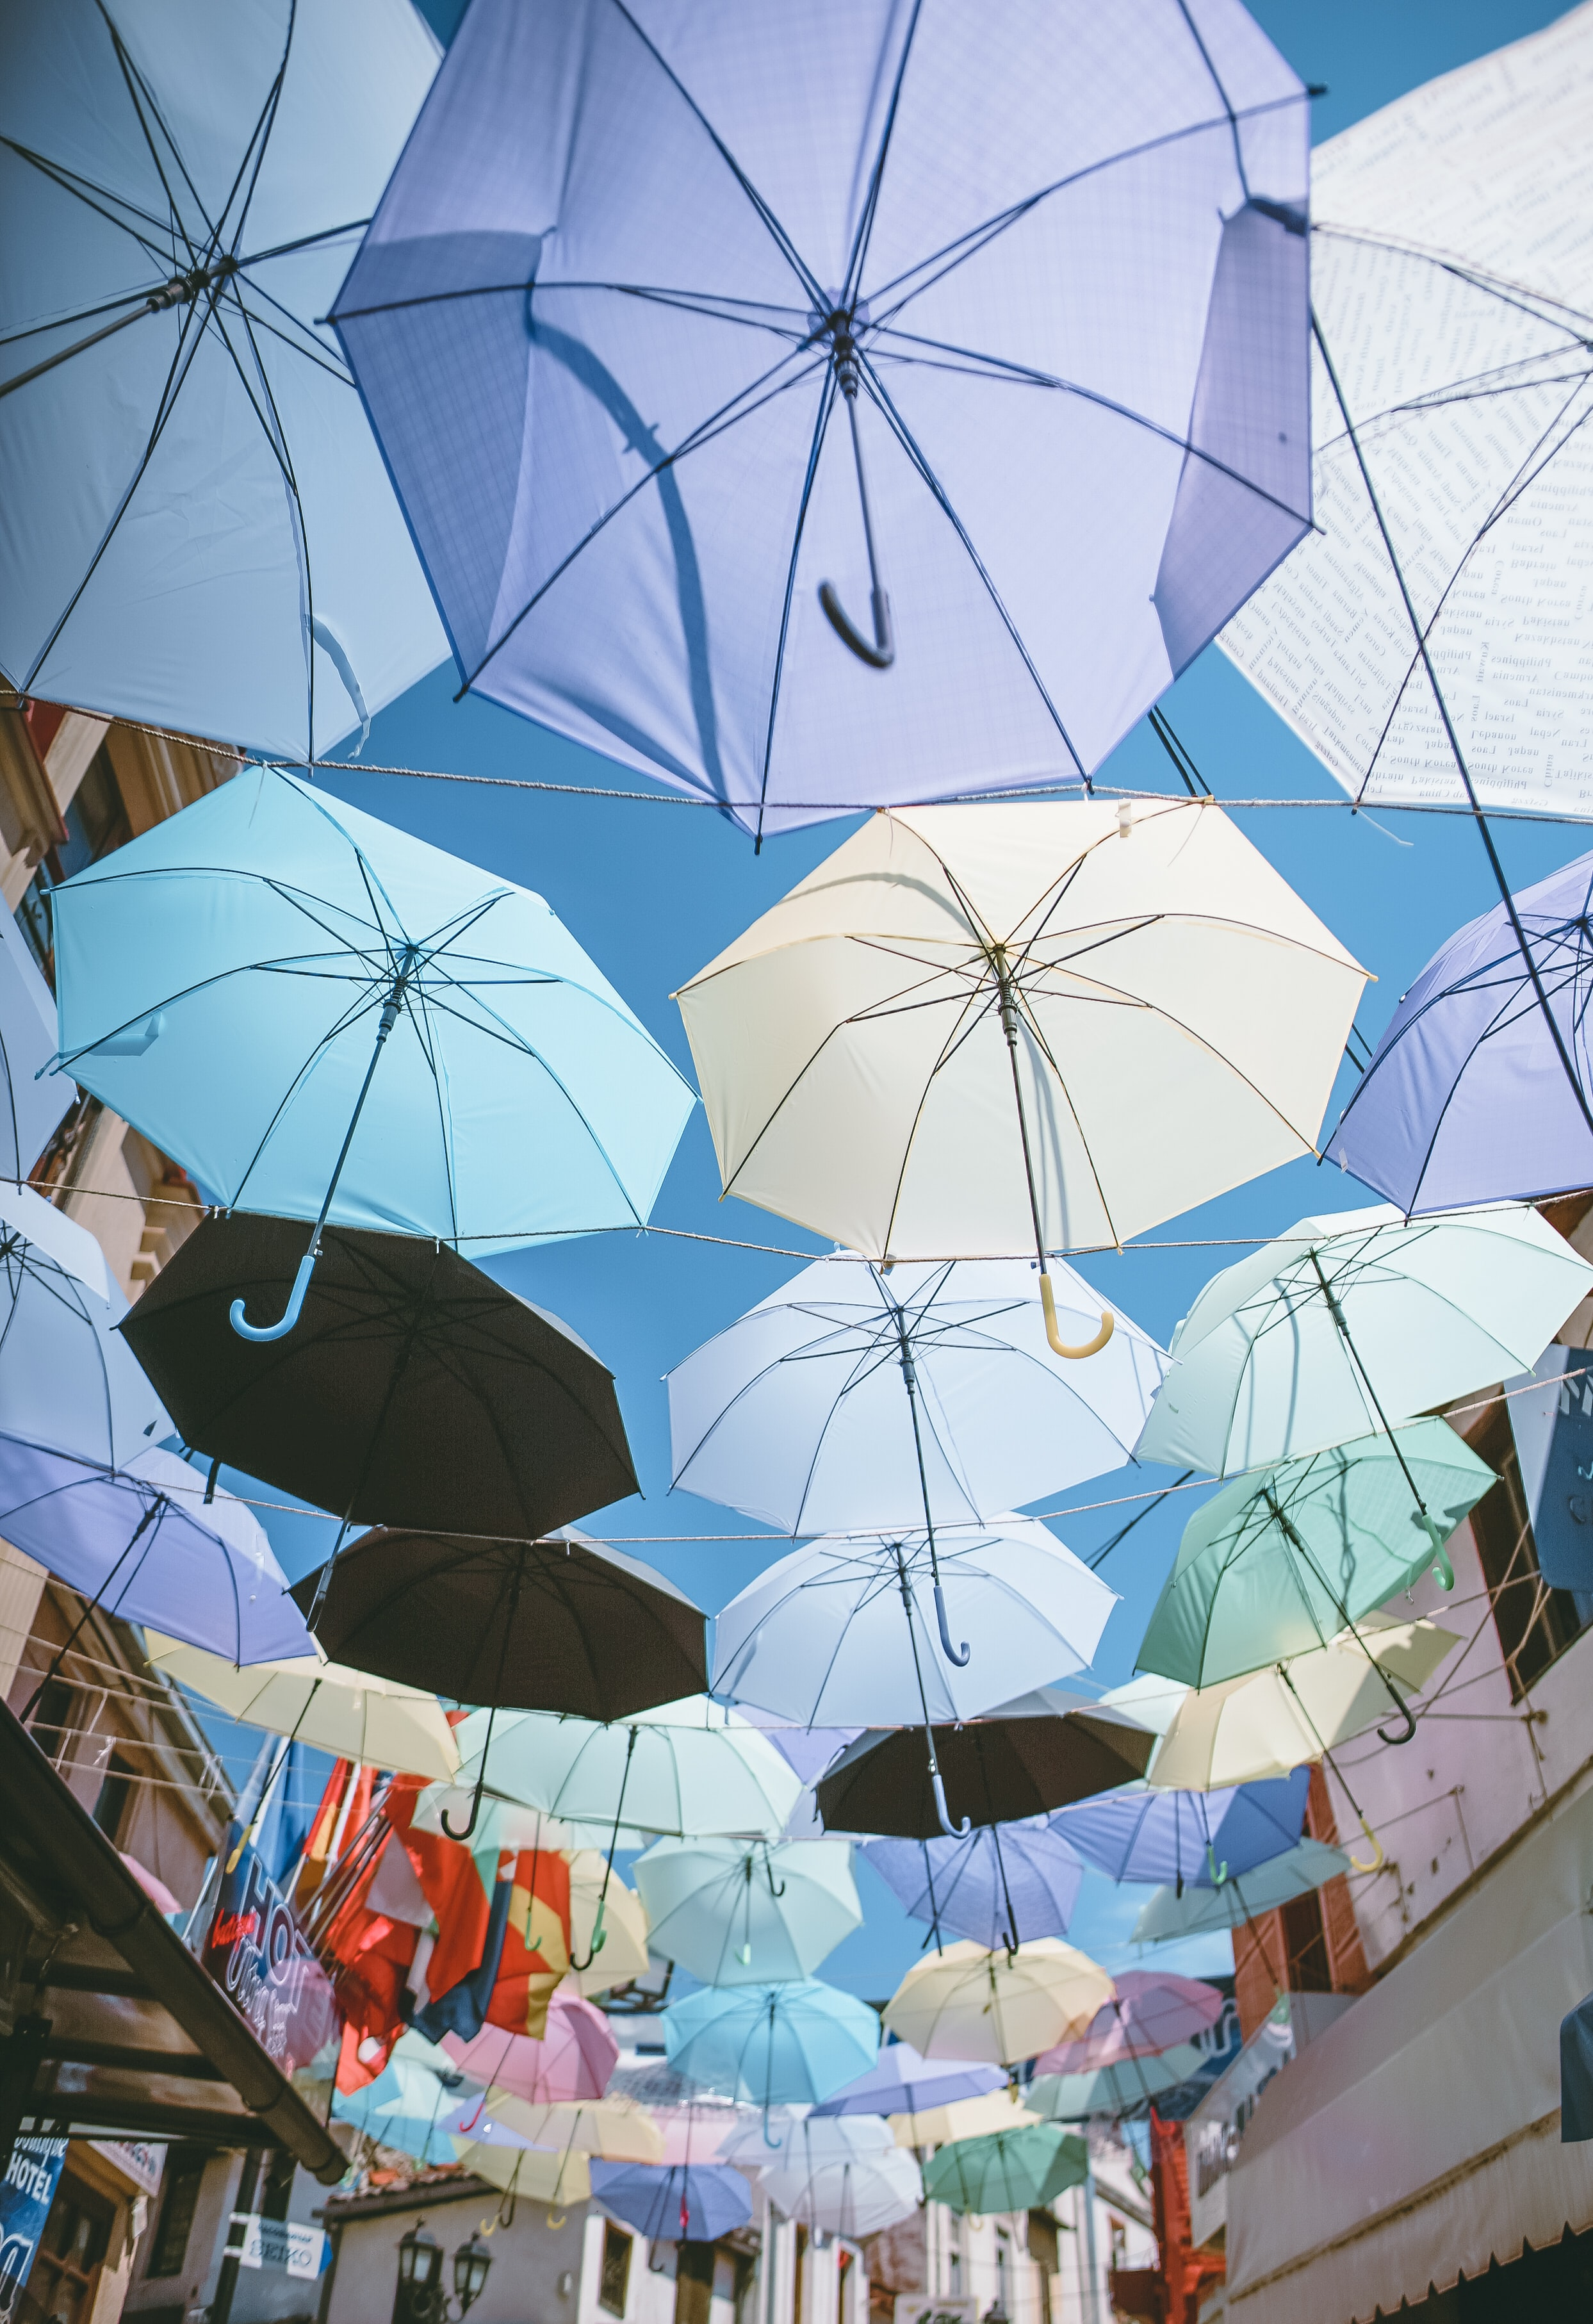 A number of colorful umbrellas suspended in the air over a street